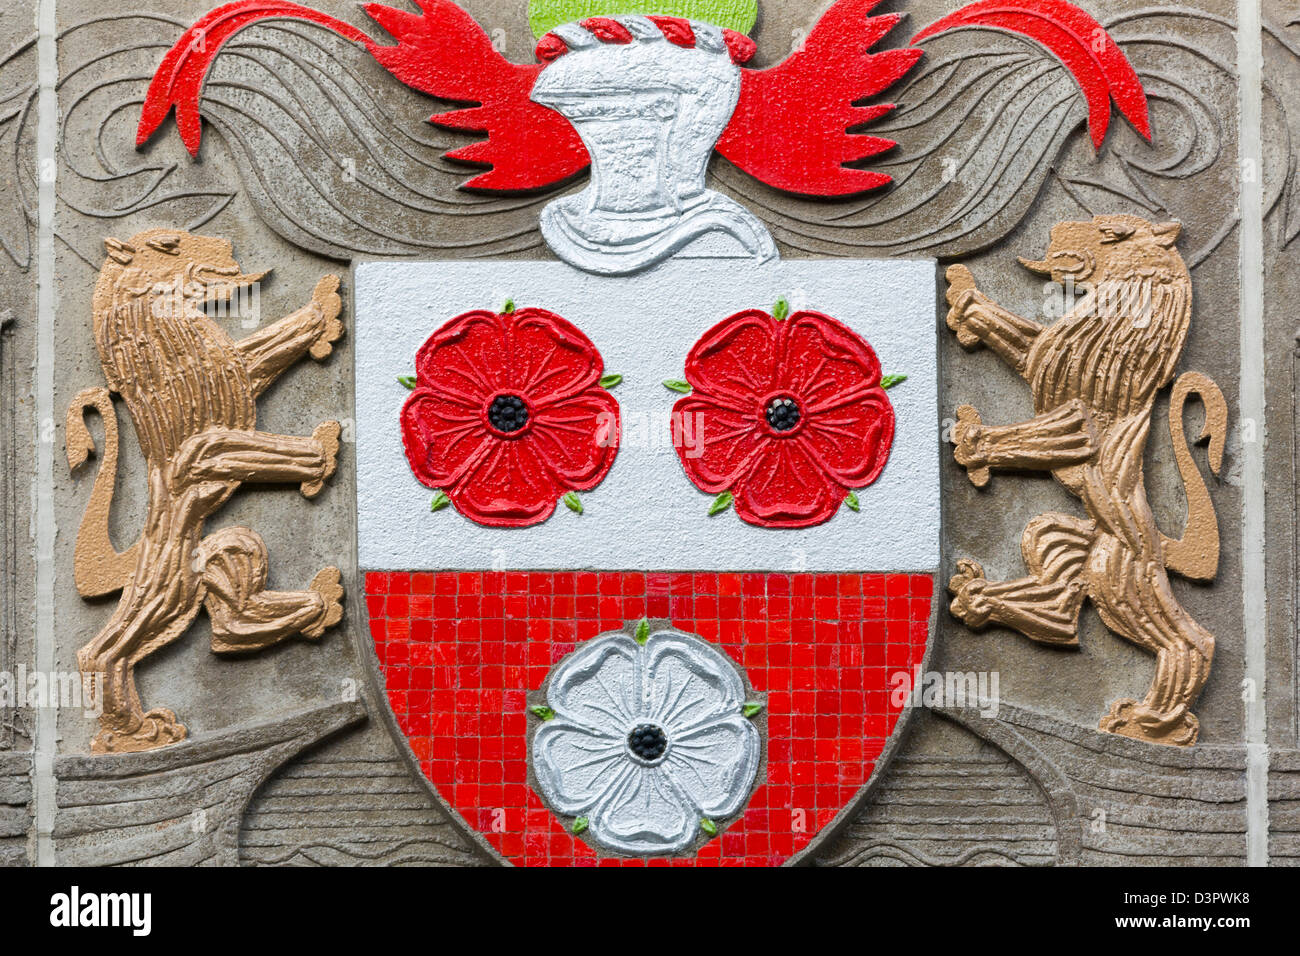 Crest on Castle House by Henry Collins,Southampton,Hampshire County,England,United Kingdom - Stock Image